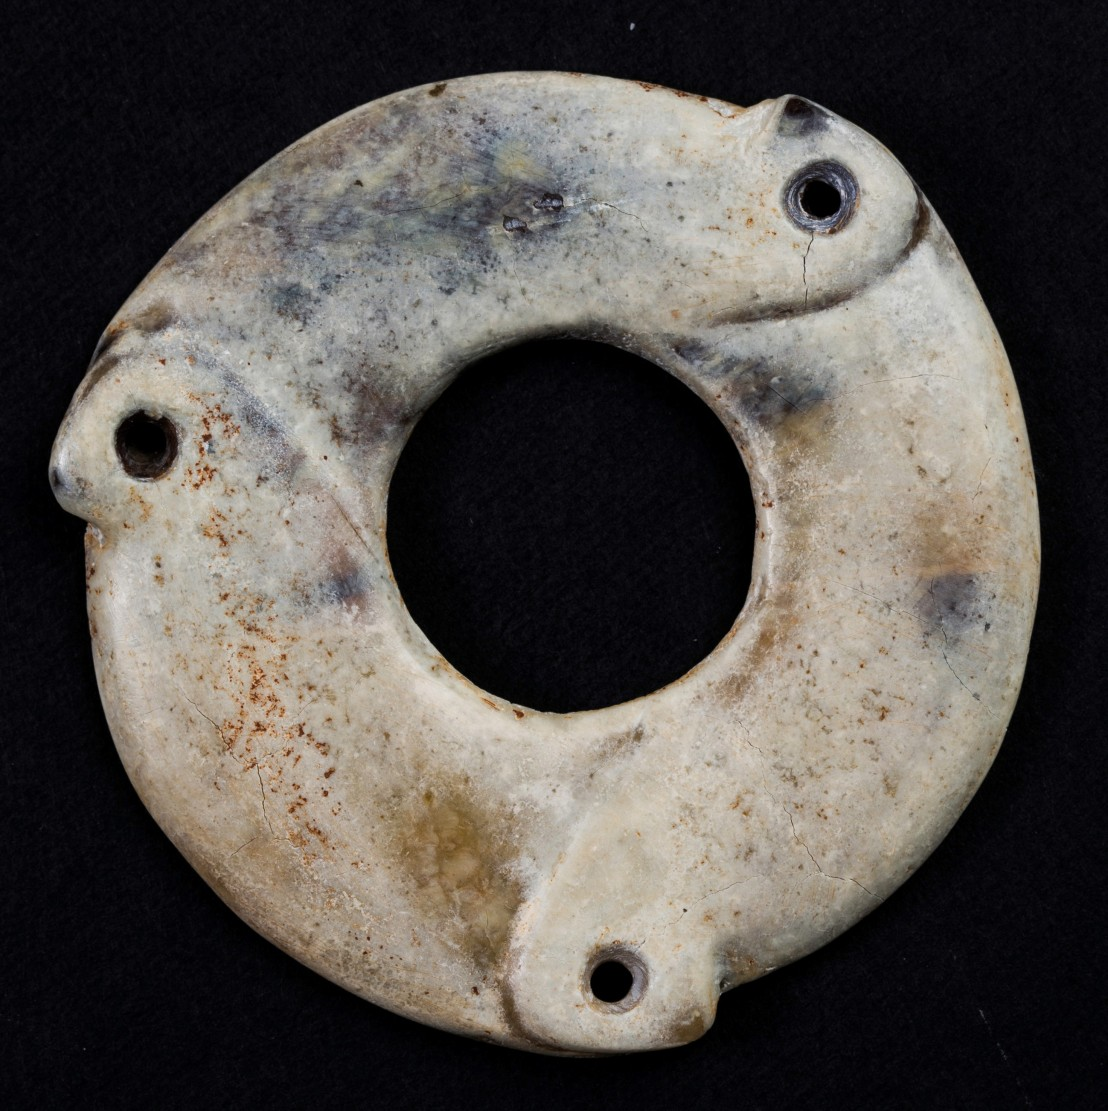 Liangzhu disc with cracks on the crust.